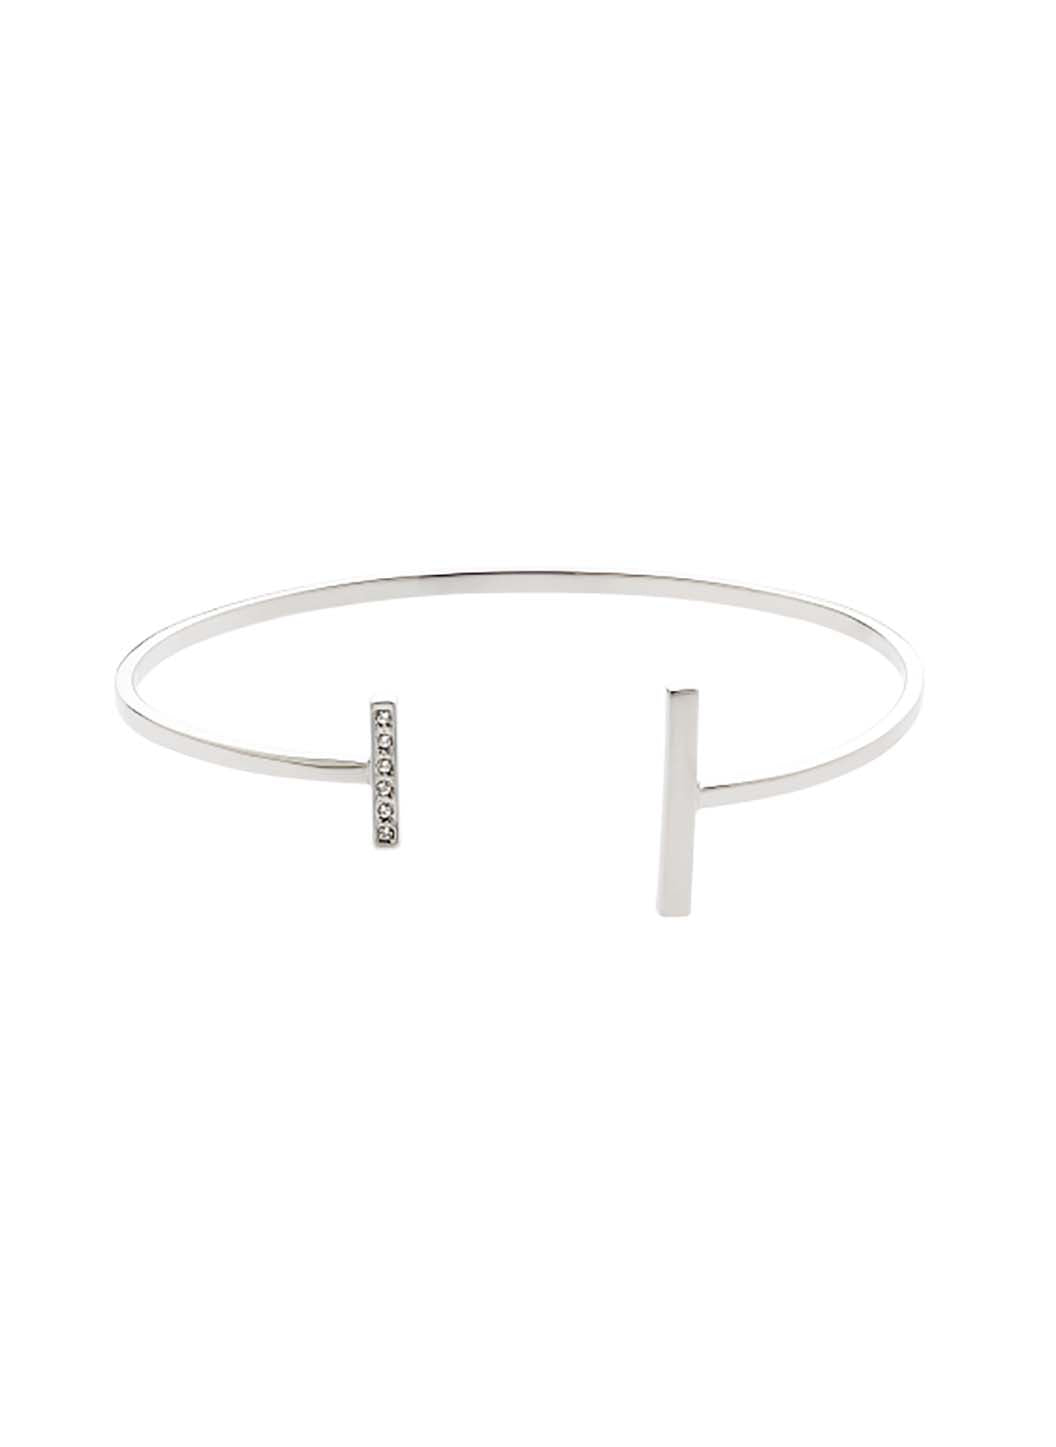 Rhodium Swarovski T Bar Bangle